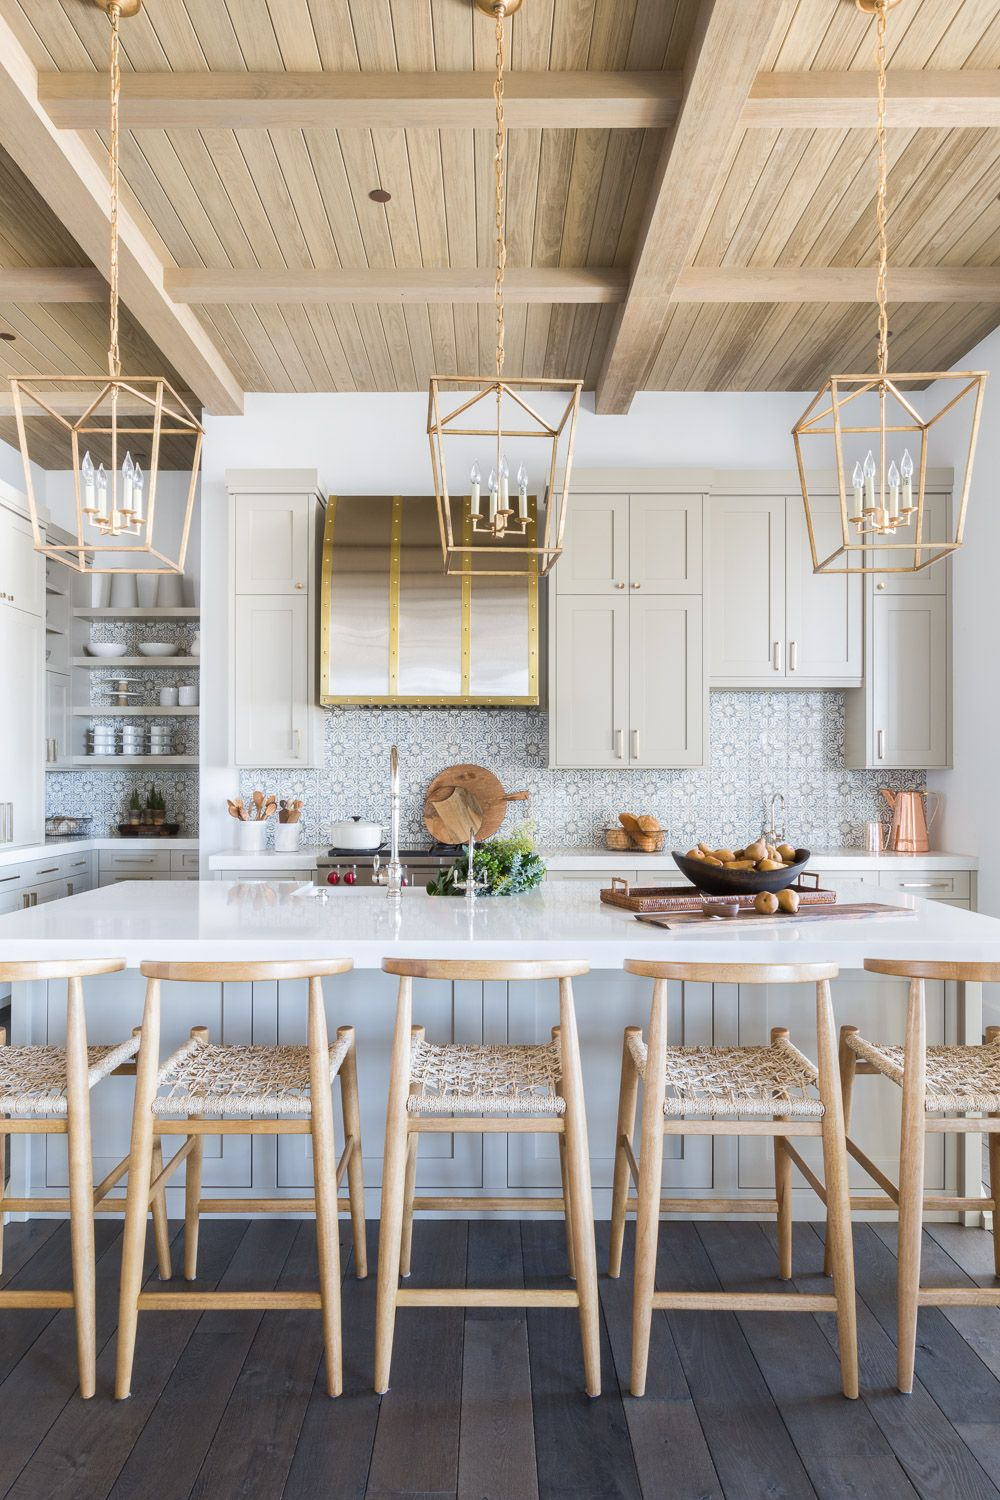 ELLE DECOR: MOUNTAIN RANCH PROJECT — Nicole Davis Interiors in